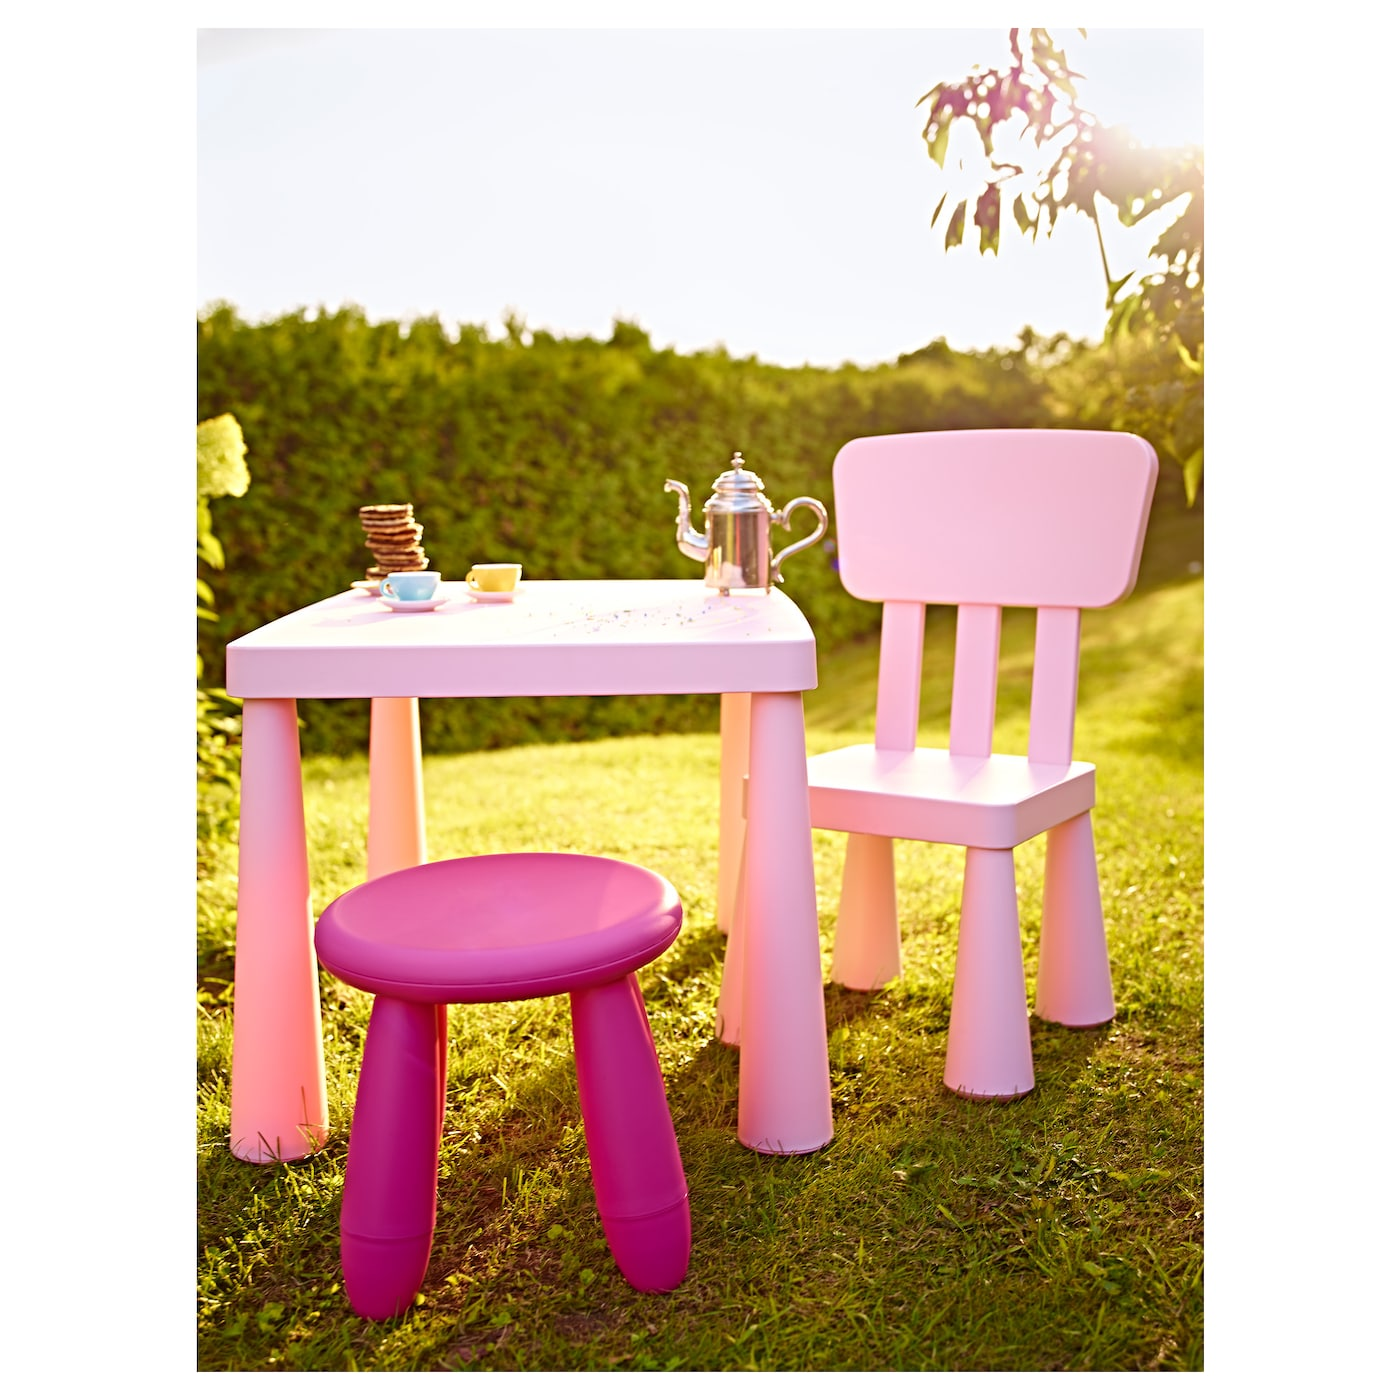 MAMMUT Children s table In outdoor light pink 77x55 cm IKEA